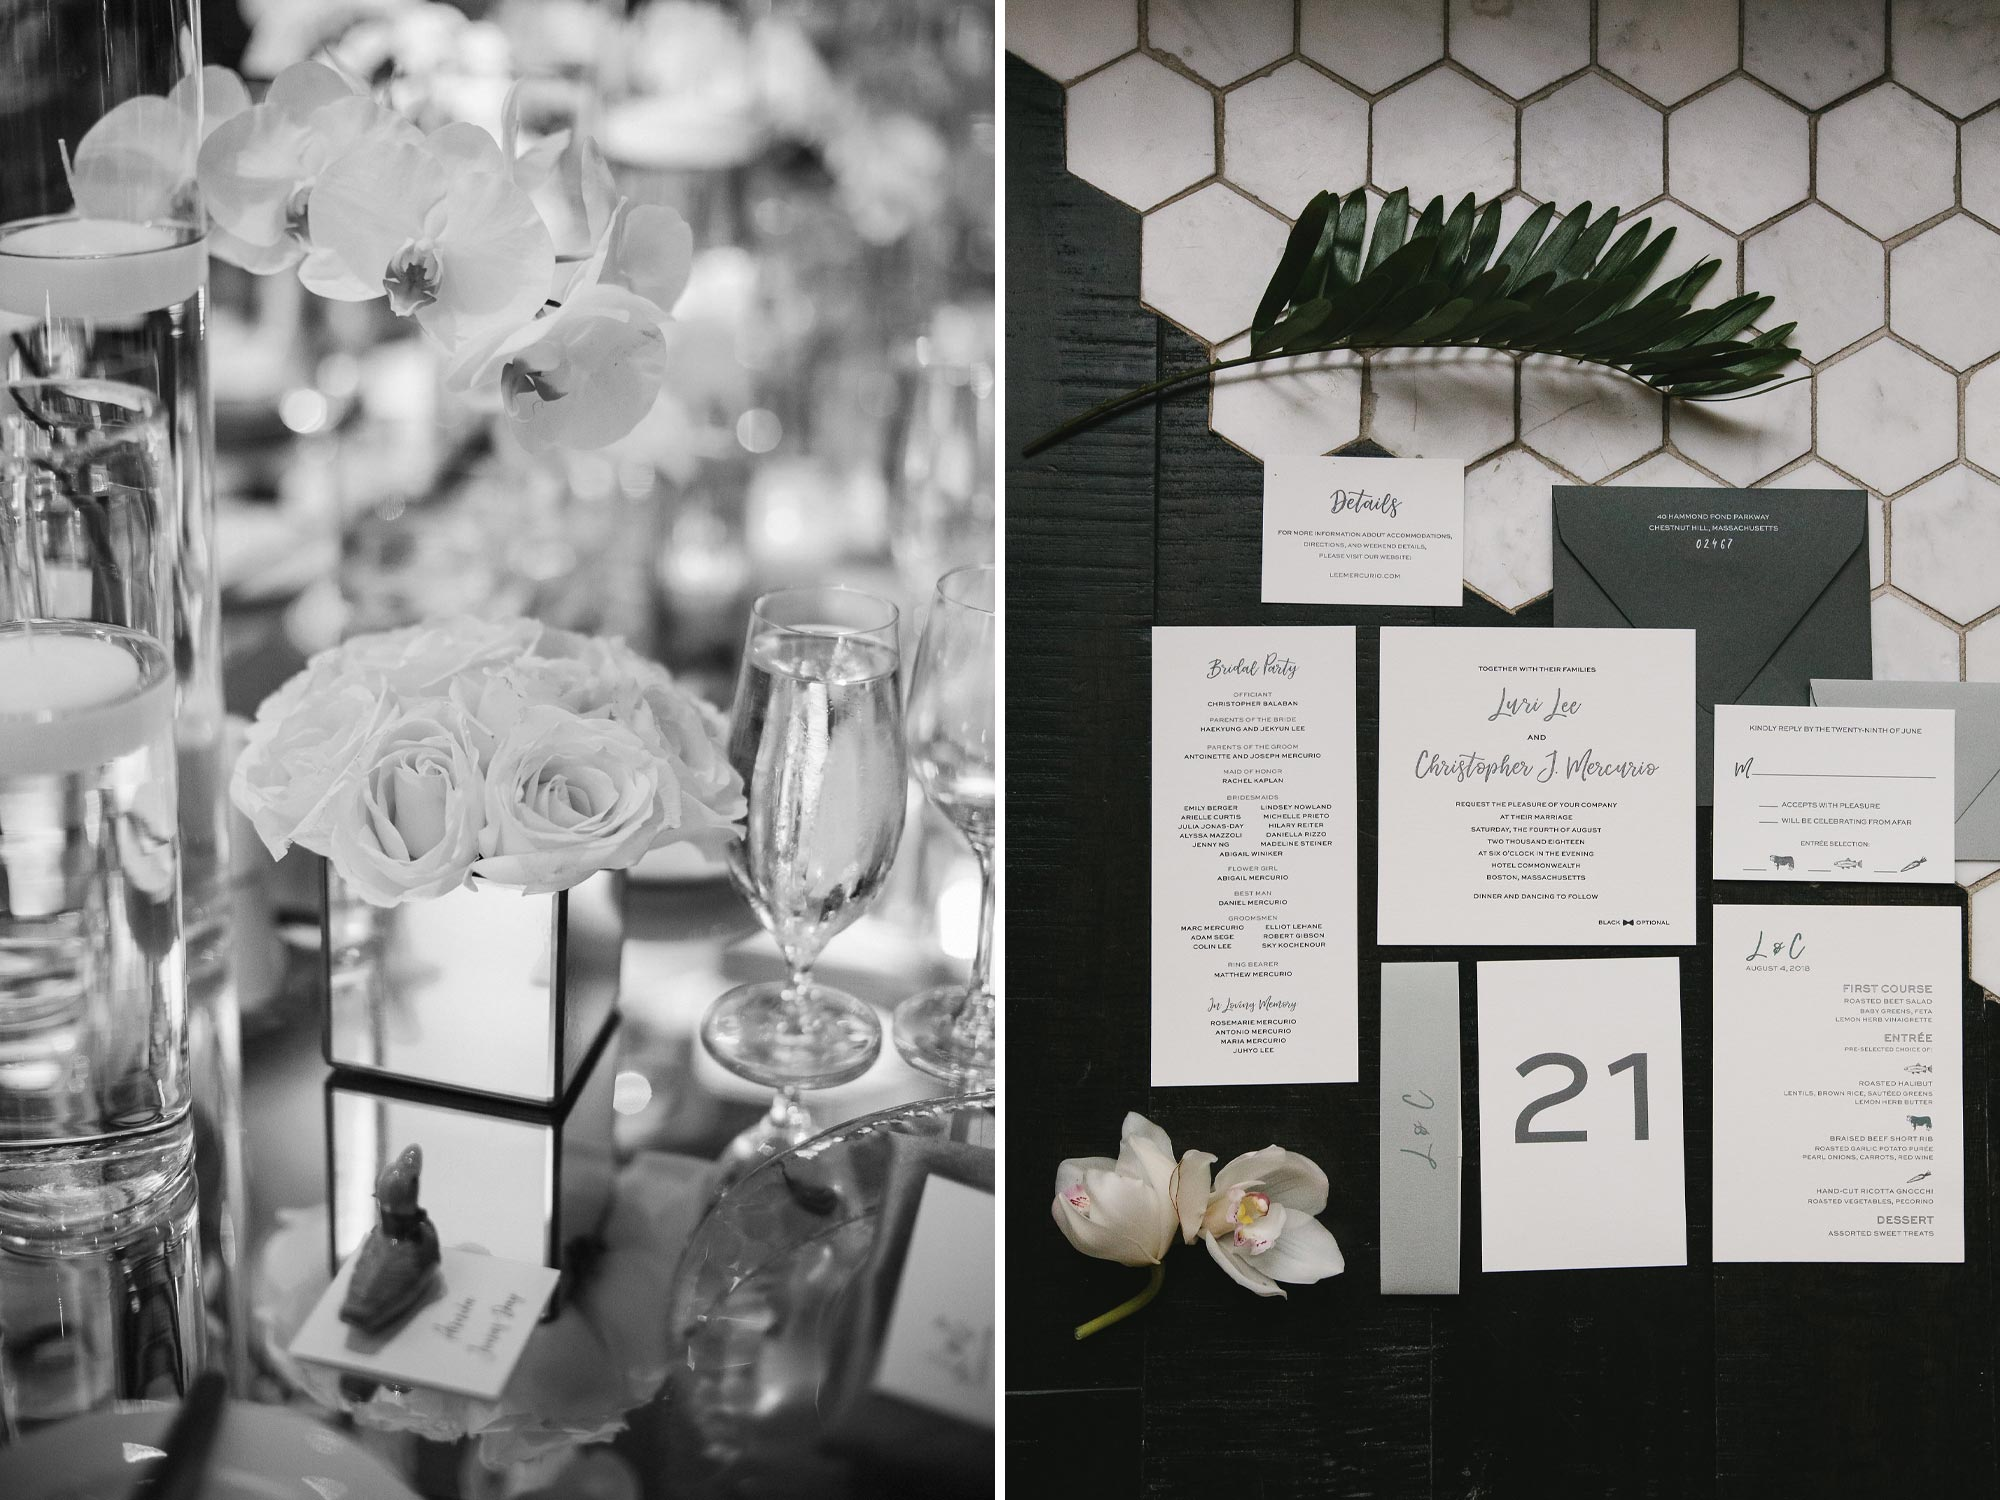 Korean Traditions Wedding Table Decor and Florals